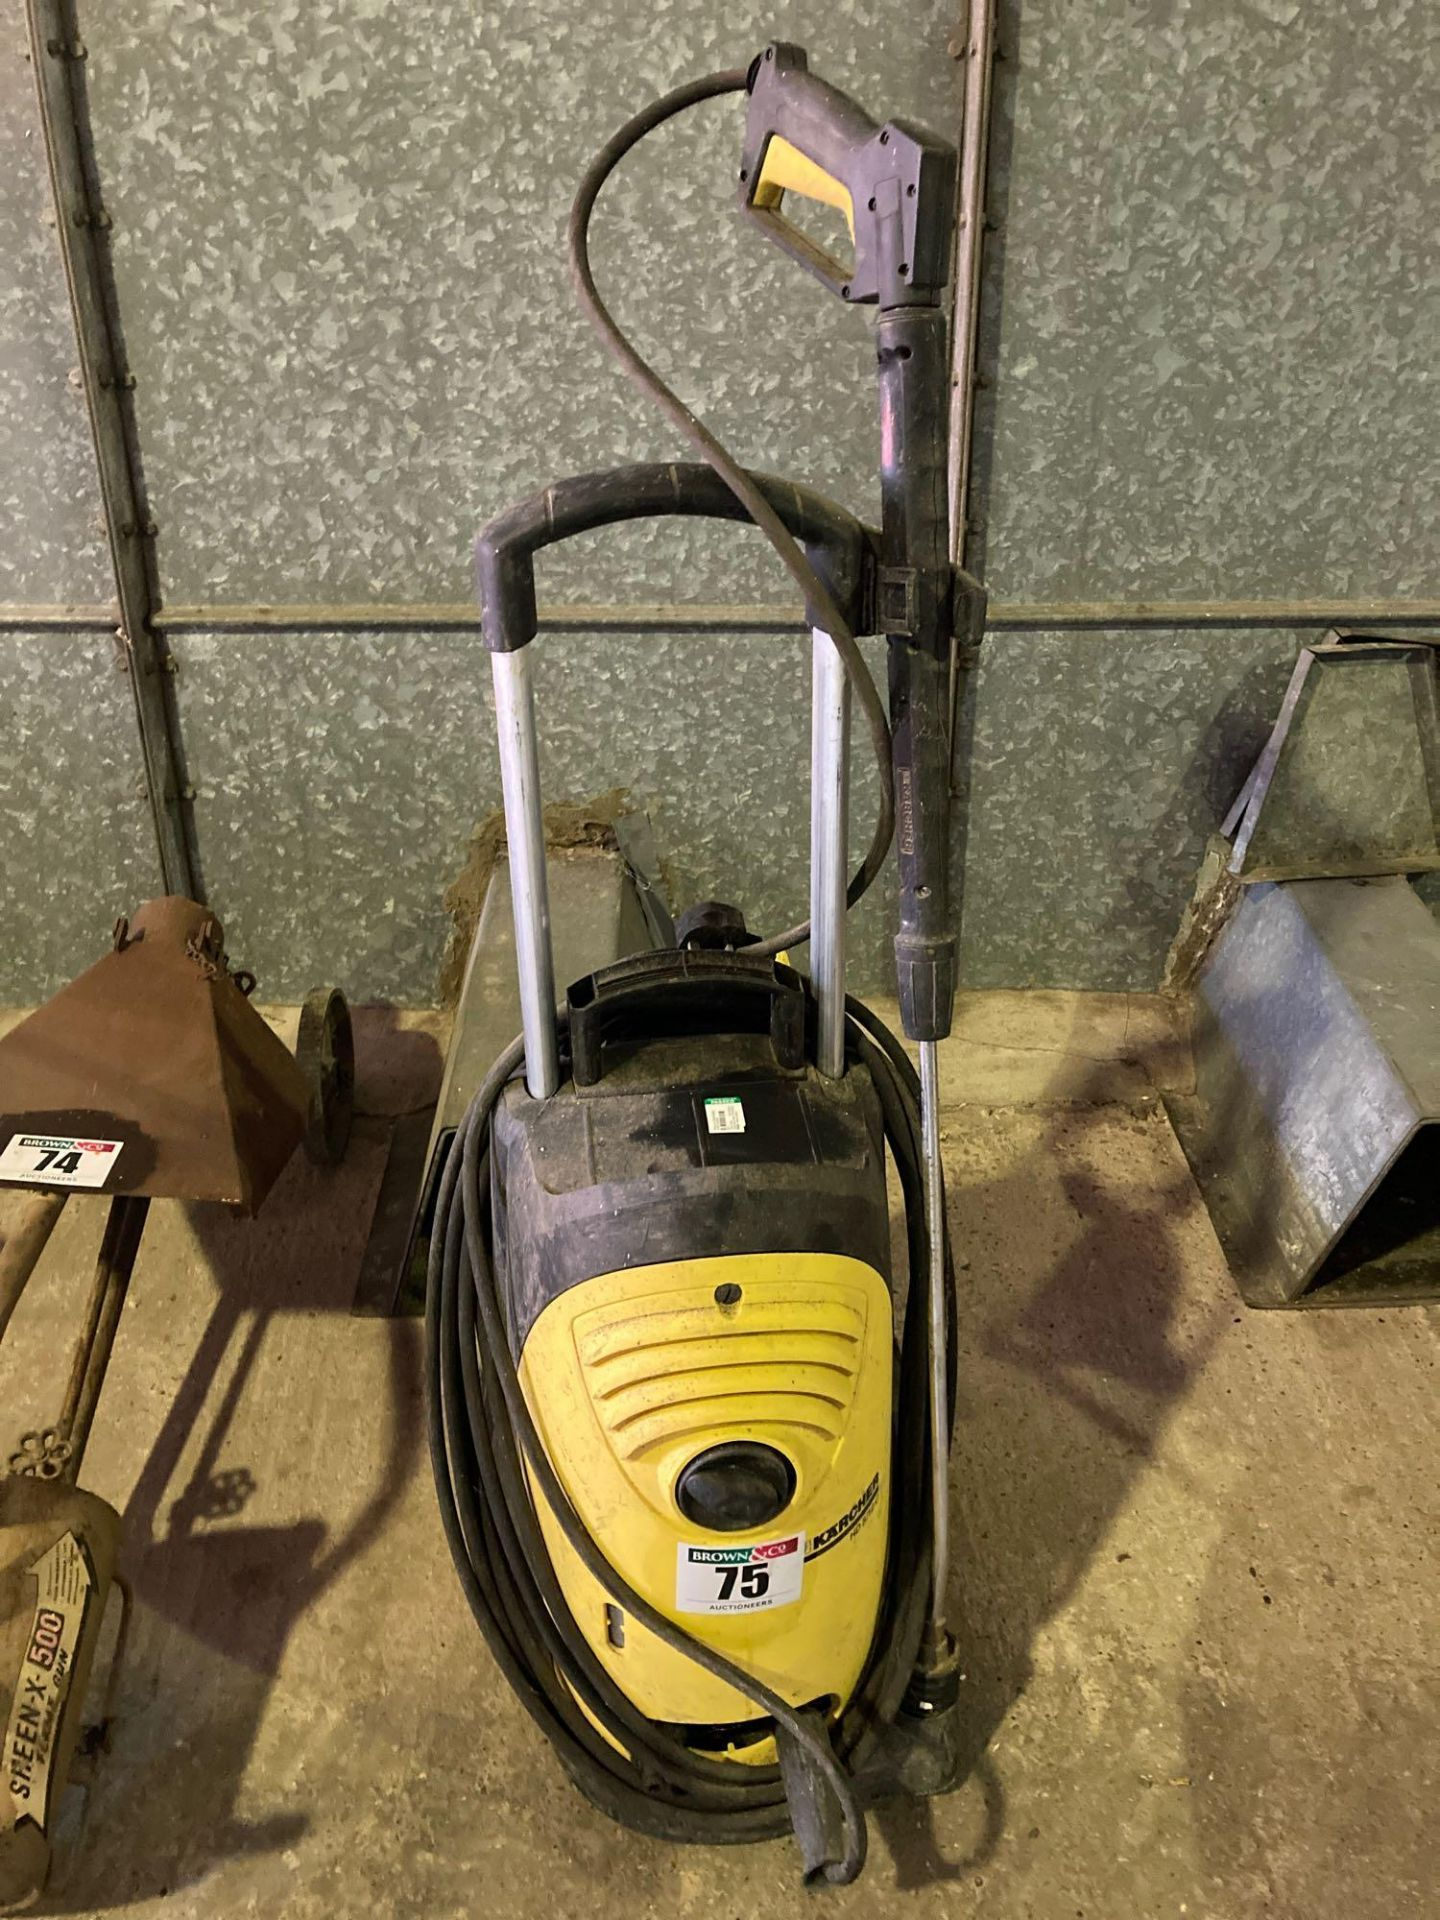 Karcher HD 5/12C pressure washer. Manual in the office.